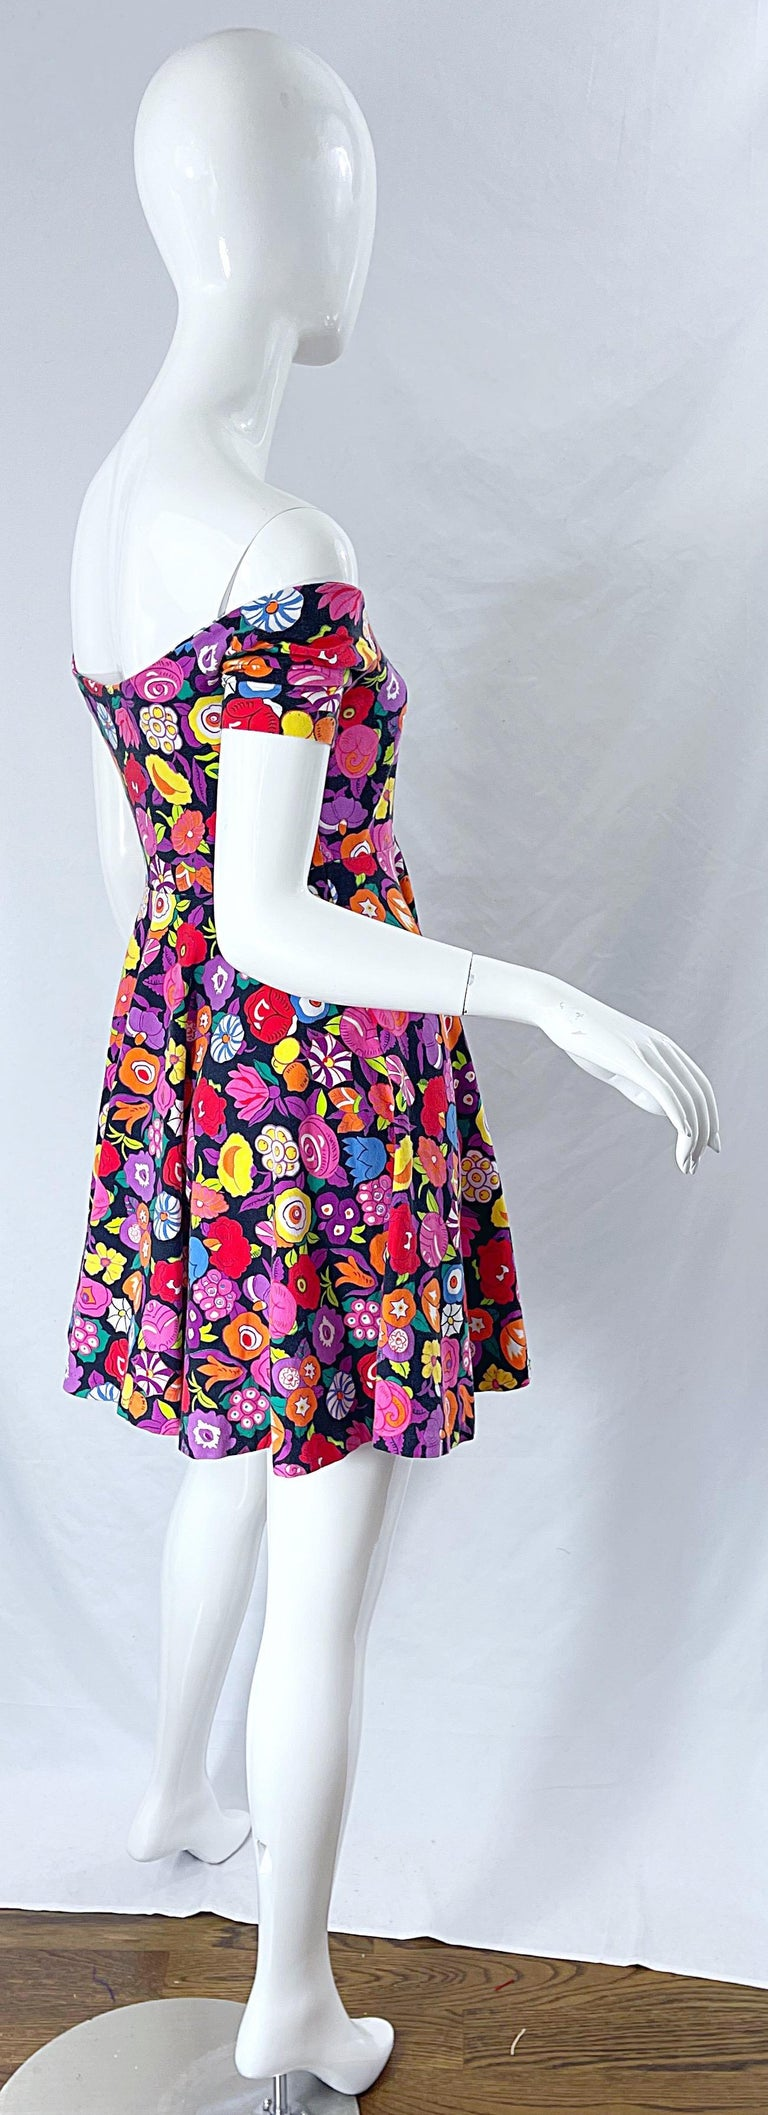 1980s Betsey Johnson Punk Label Off Shoulder Bright Flower 80s Mini Dress In Excellent Condition For Sale In Chicago, IL